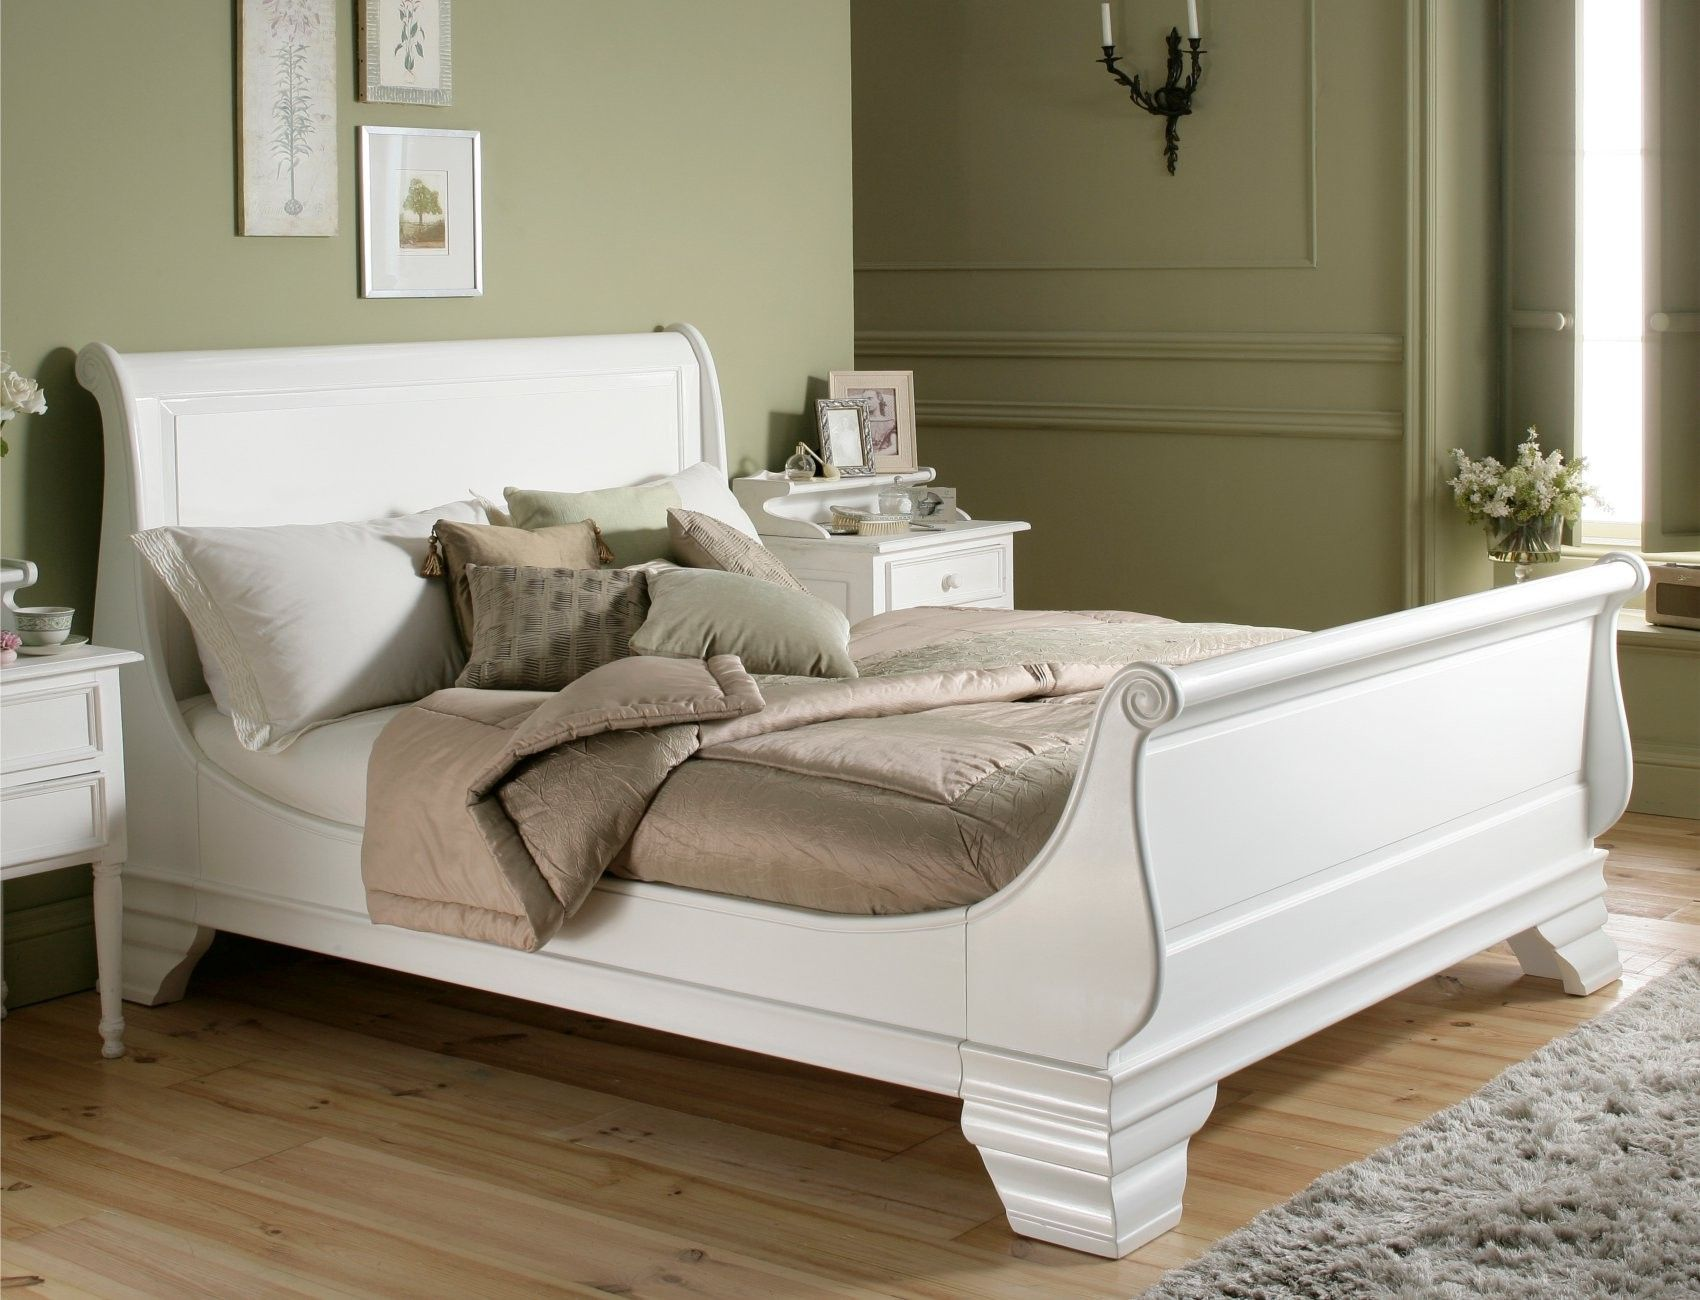 Bordeaux french style white wooden sleigh bed master for Bedroom designs with sleigh beds